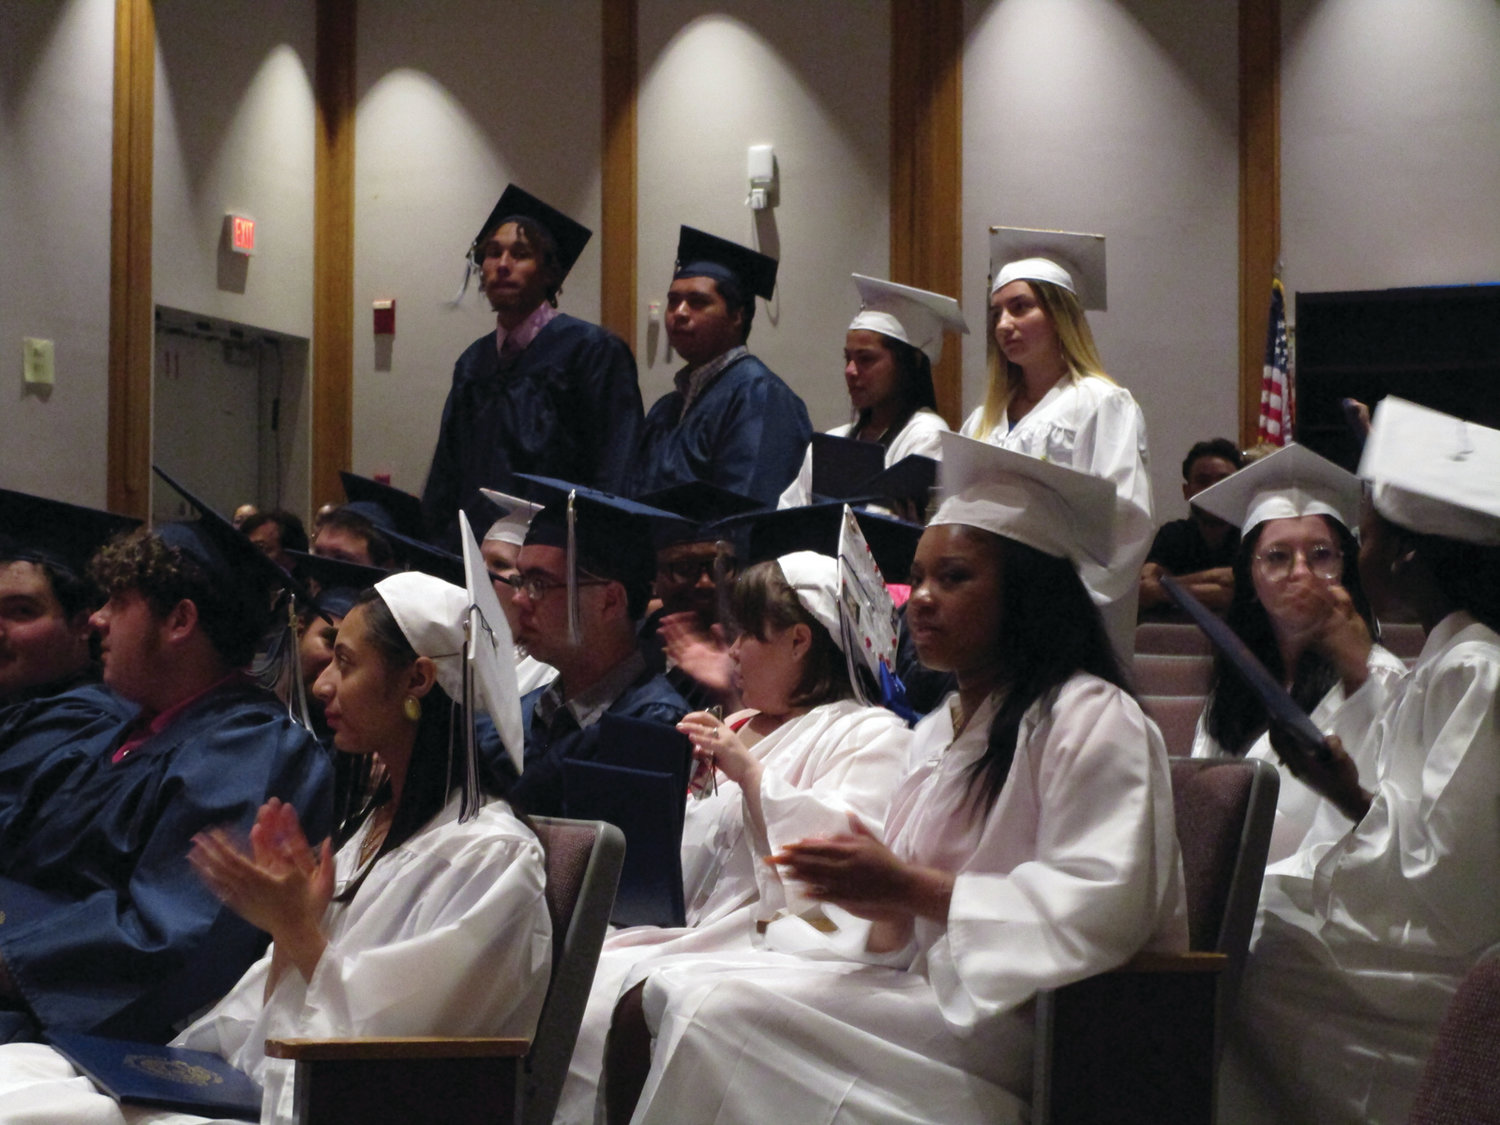 REASON TO CHEER: NEL/CPS Construction & Career Academy graduates cheer on their fellow classmates during the ceremony.